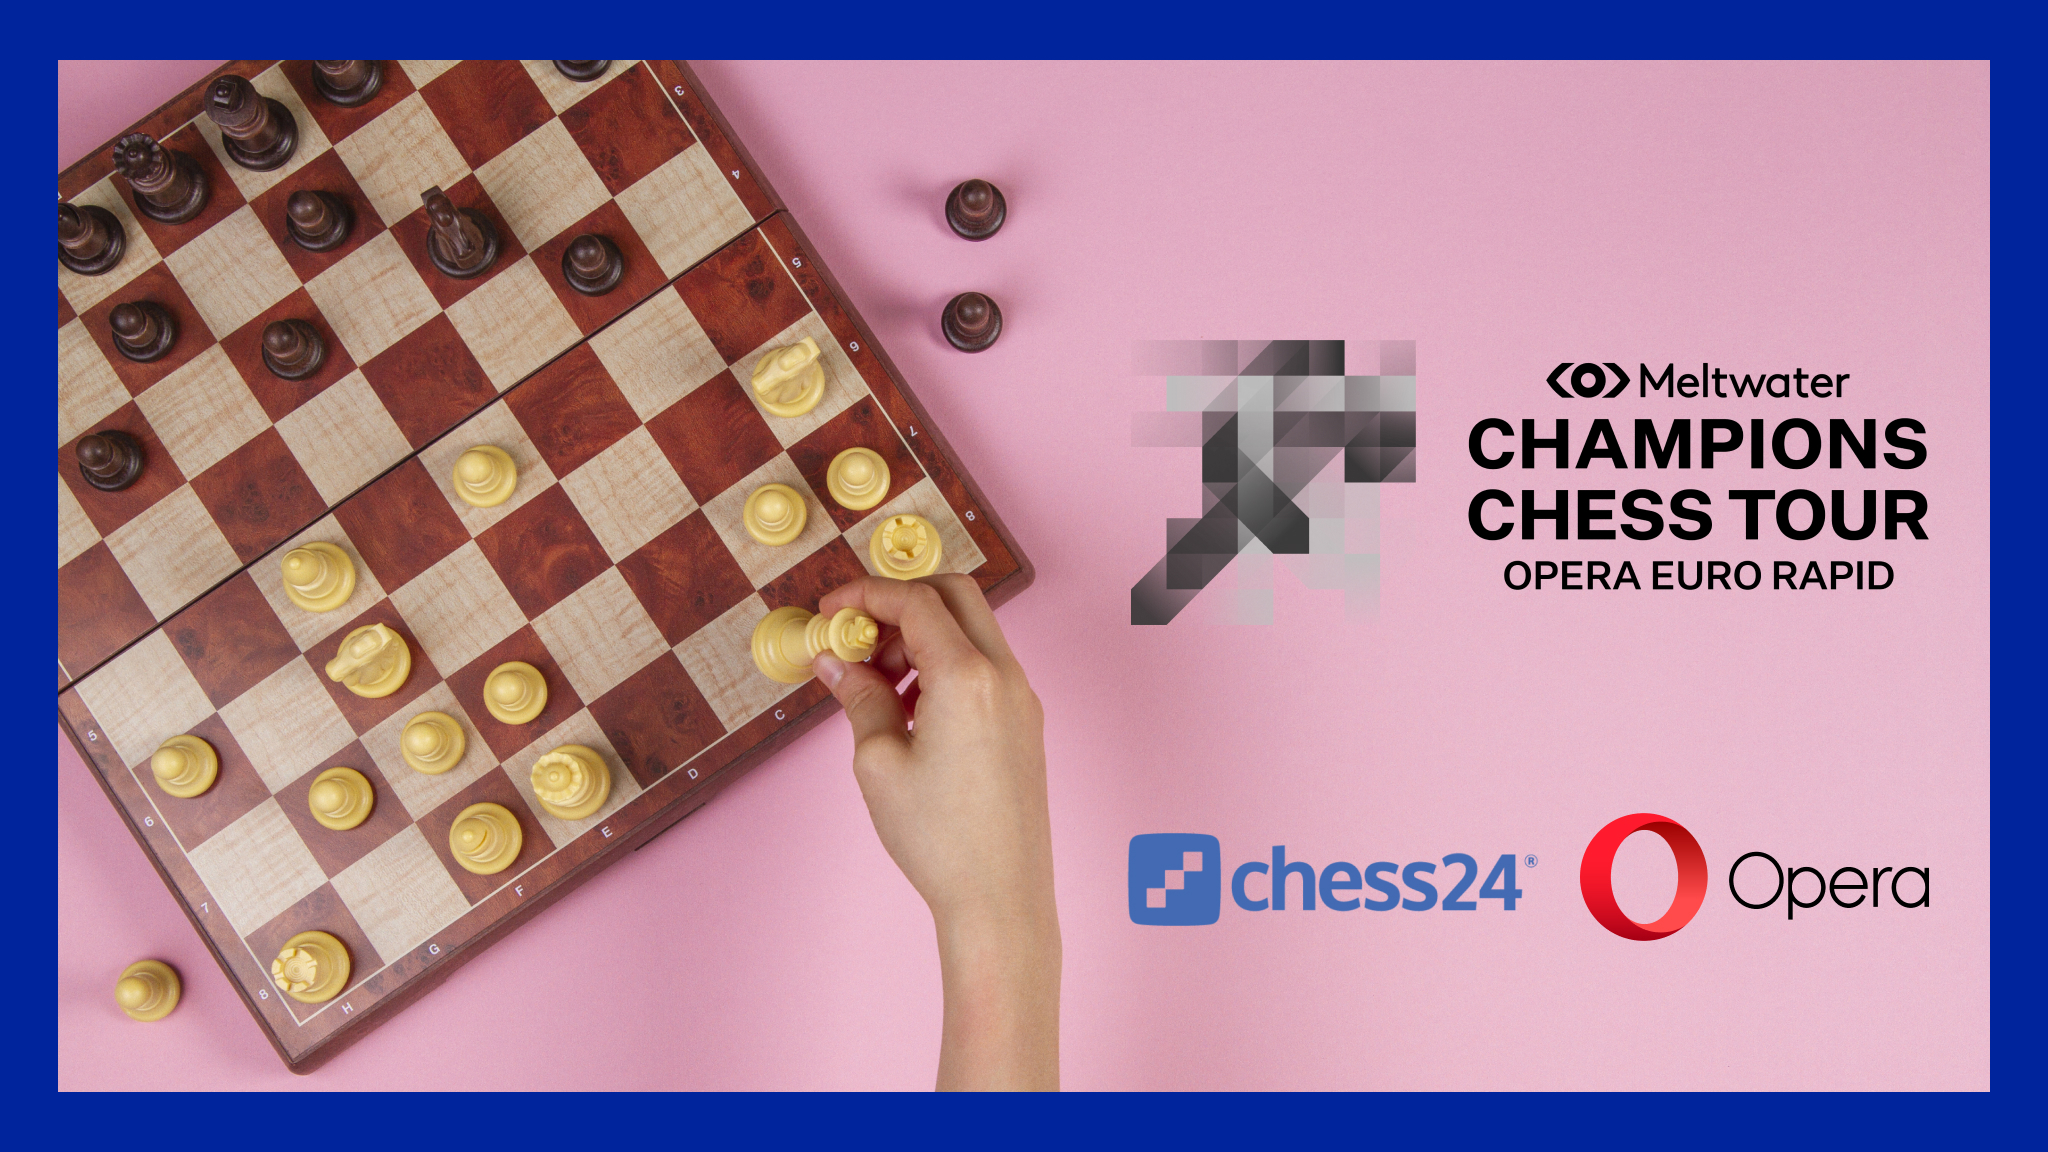 Opera Euro Rapid at Meltwater Chess Tour 2021 Chess24